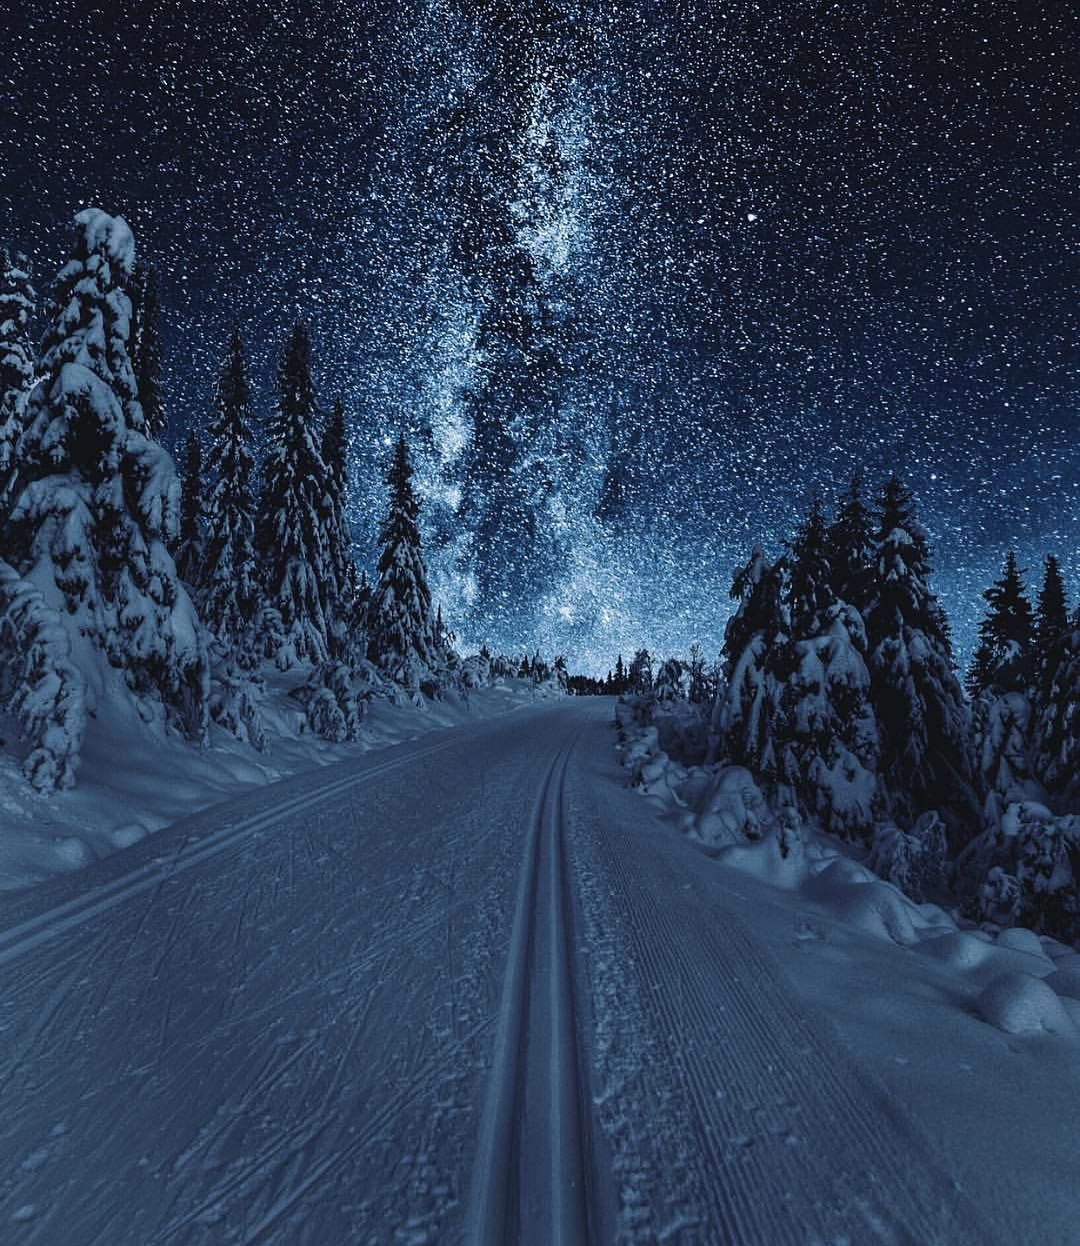 Norway Norge On Instagram Skiing Under The Stars In